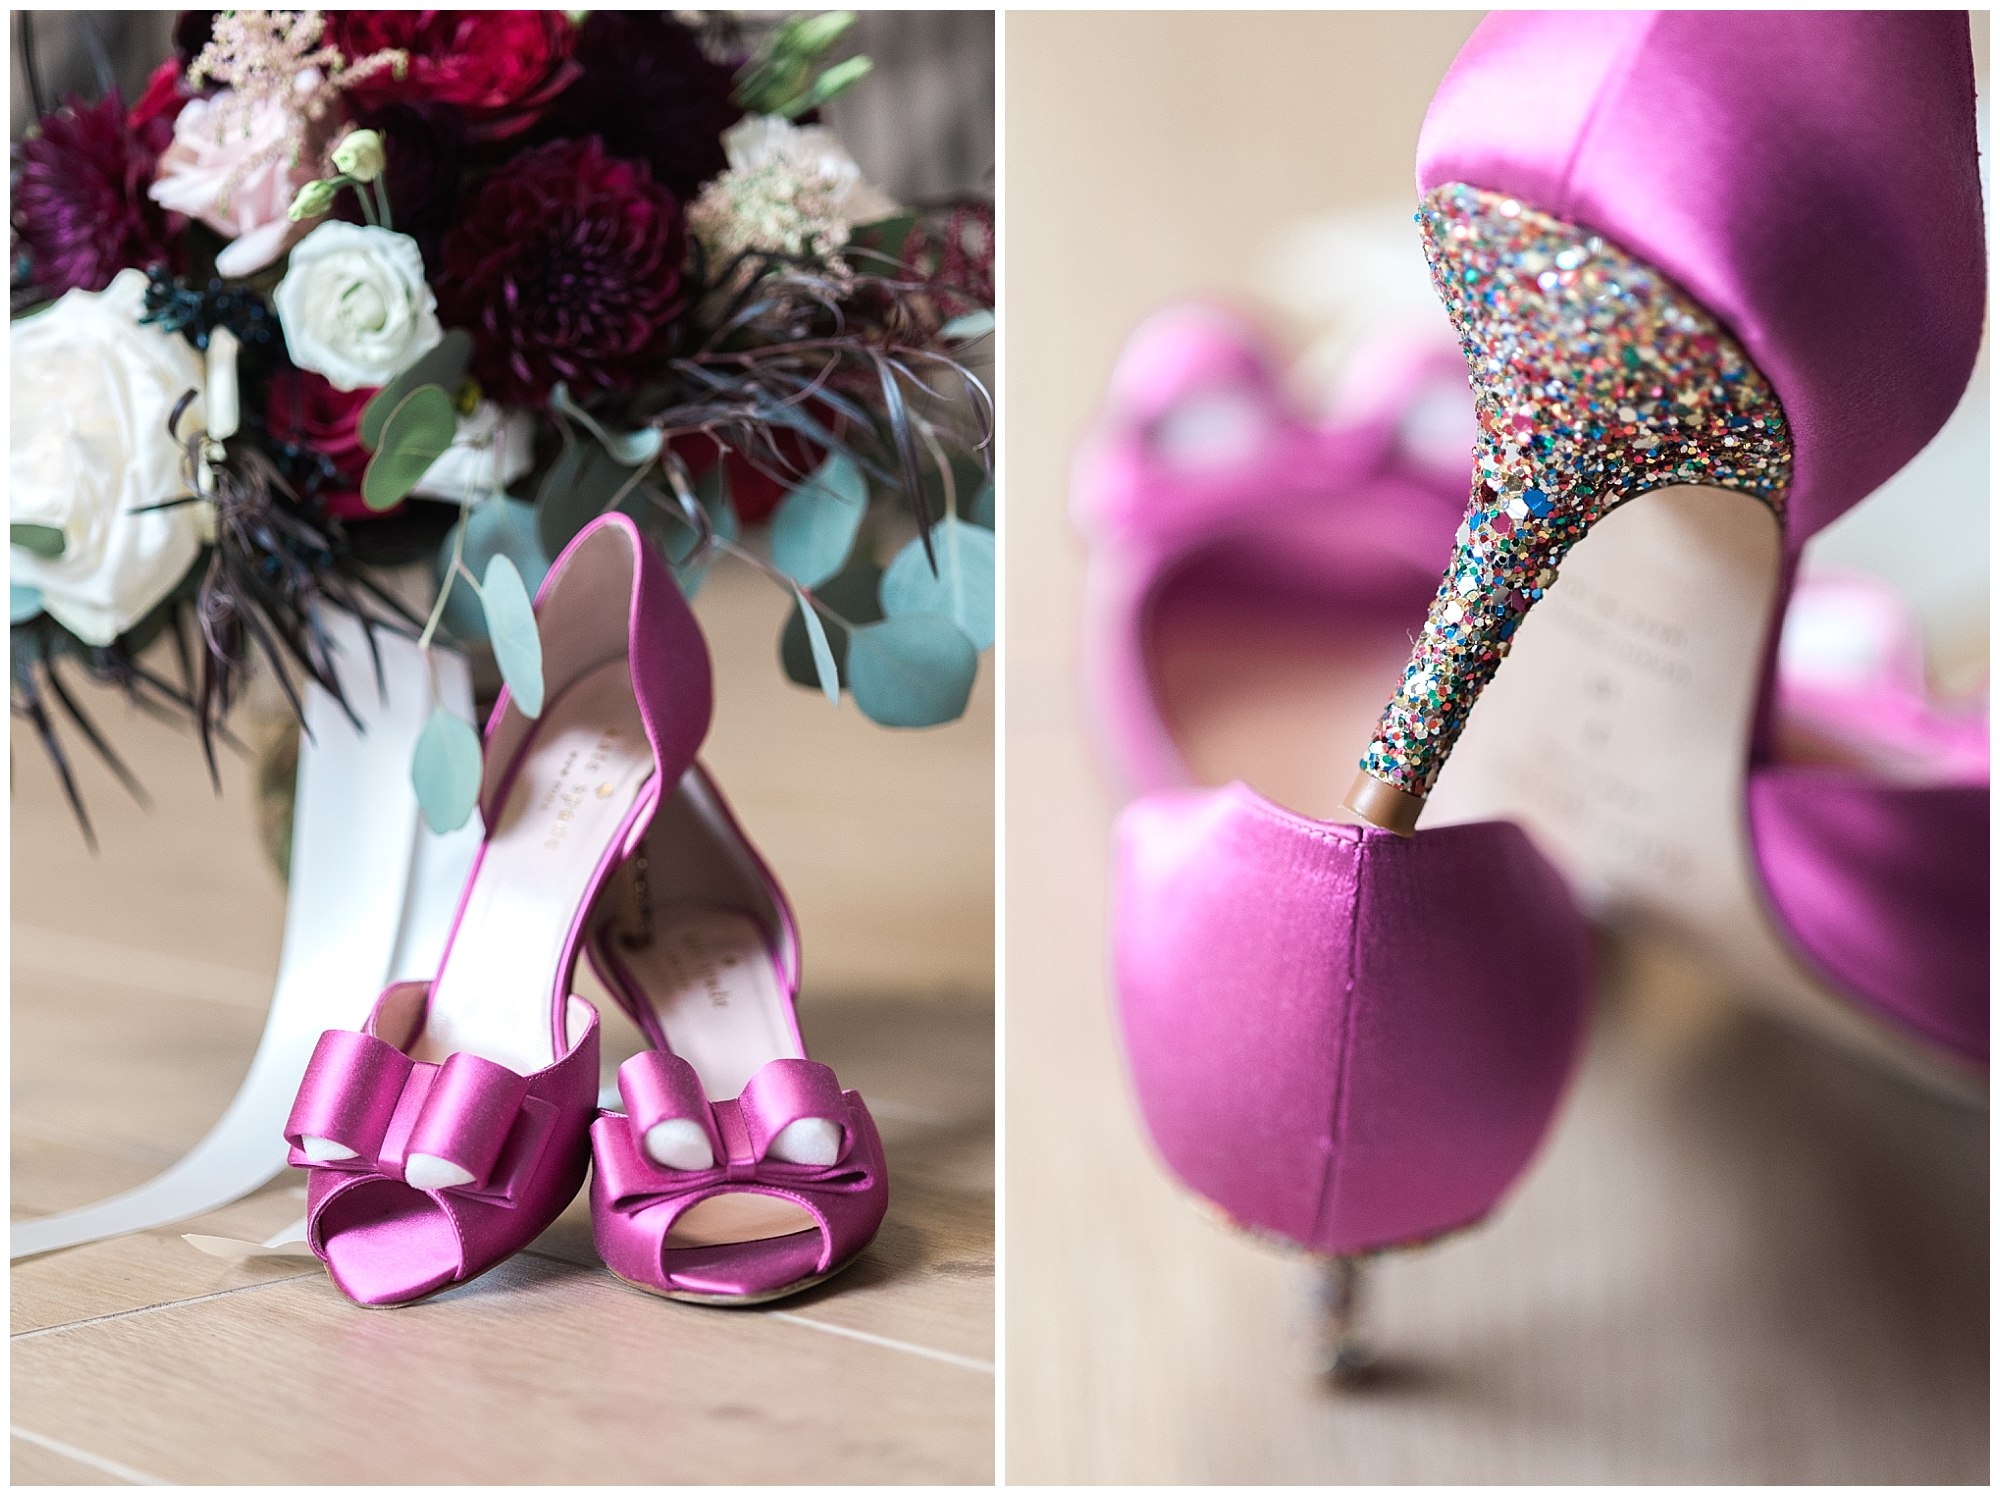 Kate Spade wedding shoes for the win!